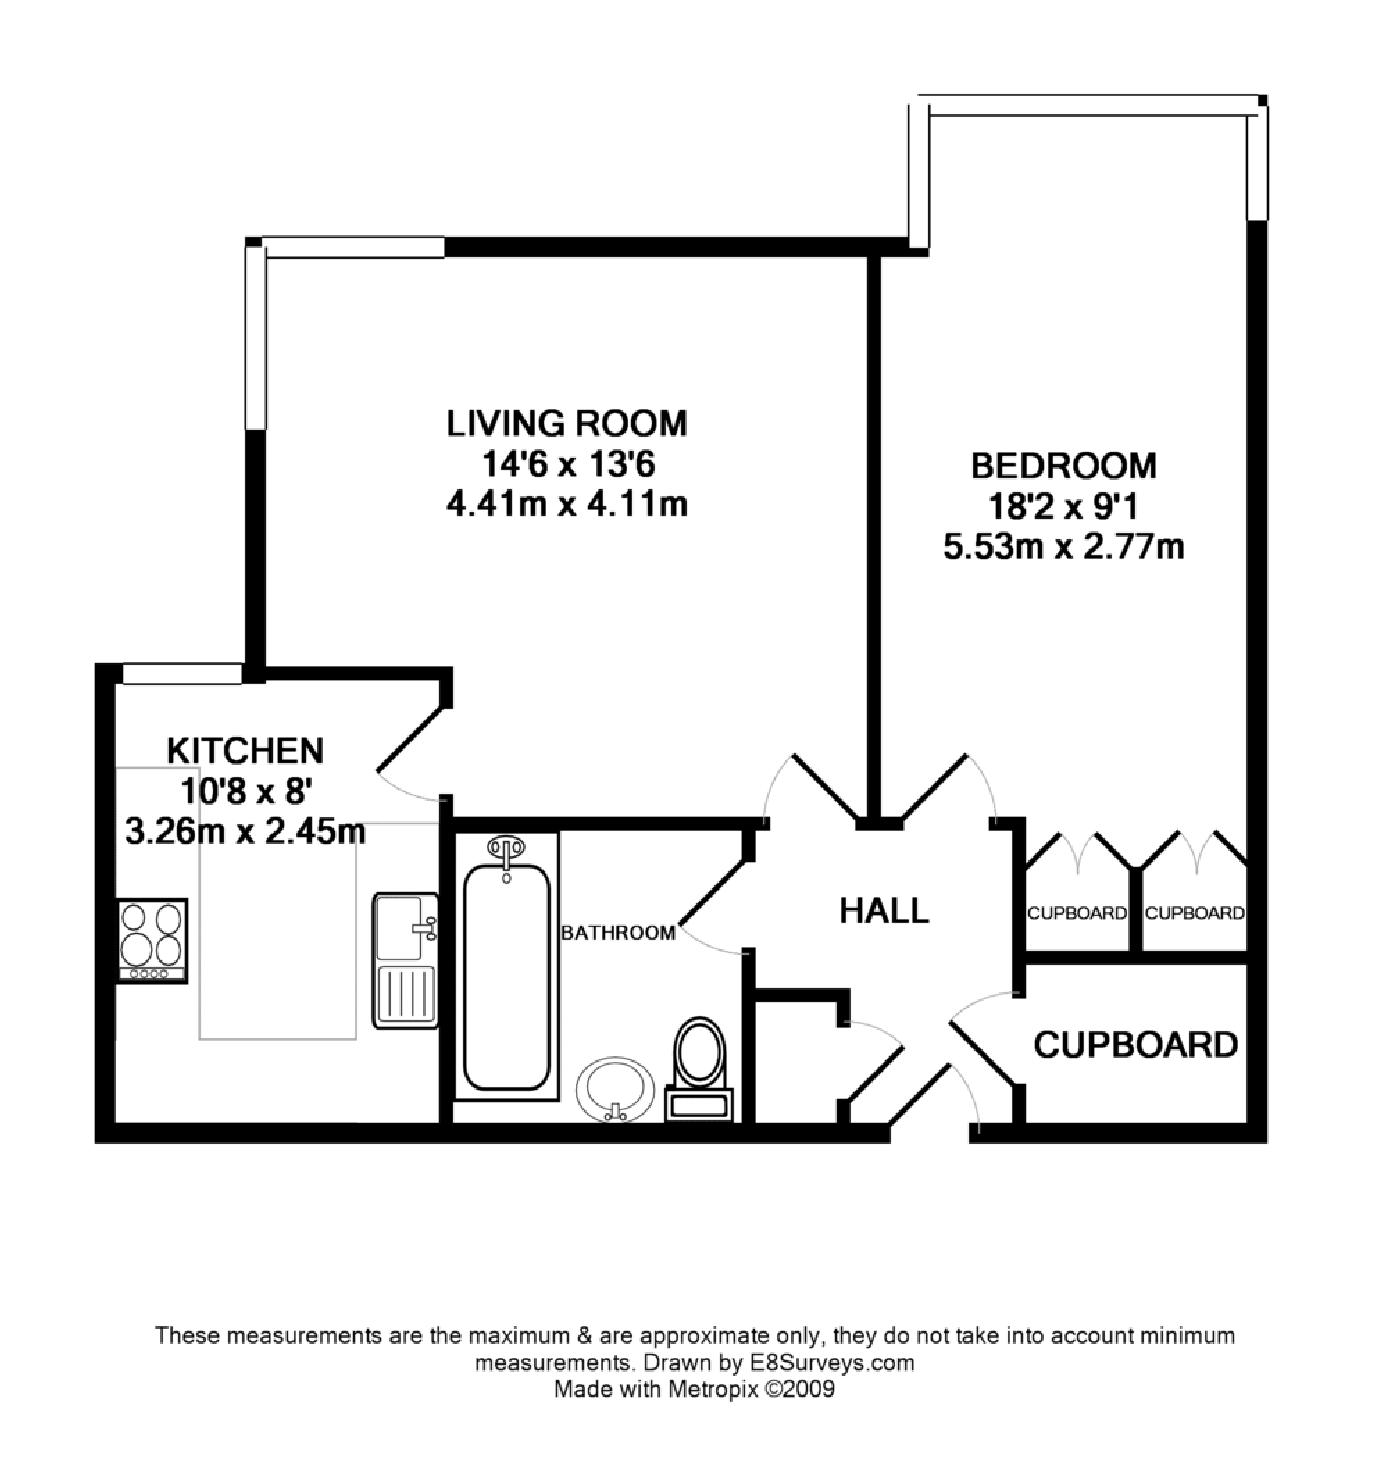 Marston ferry road ox2 ref 2988 oxford summertown for 1 bedroom flat floor plan